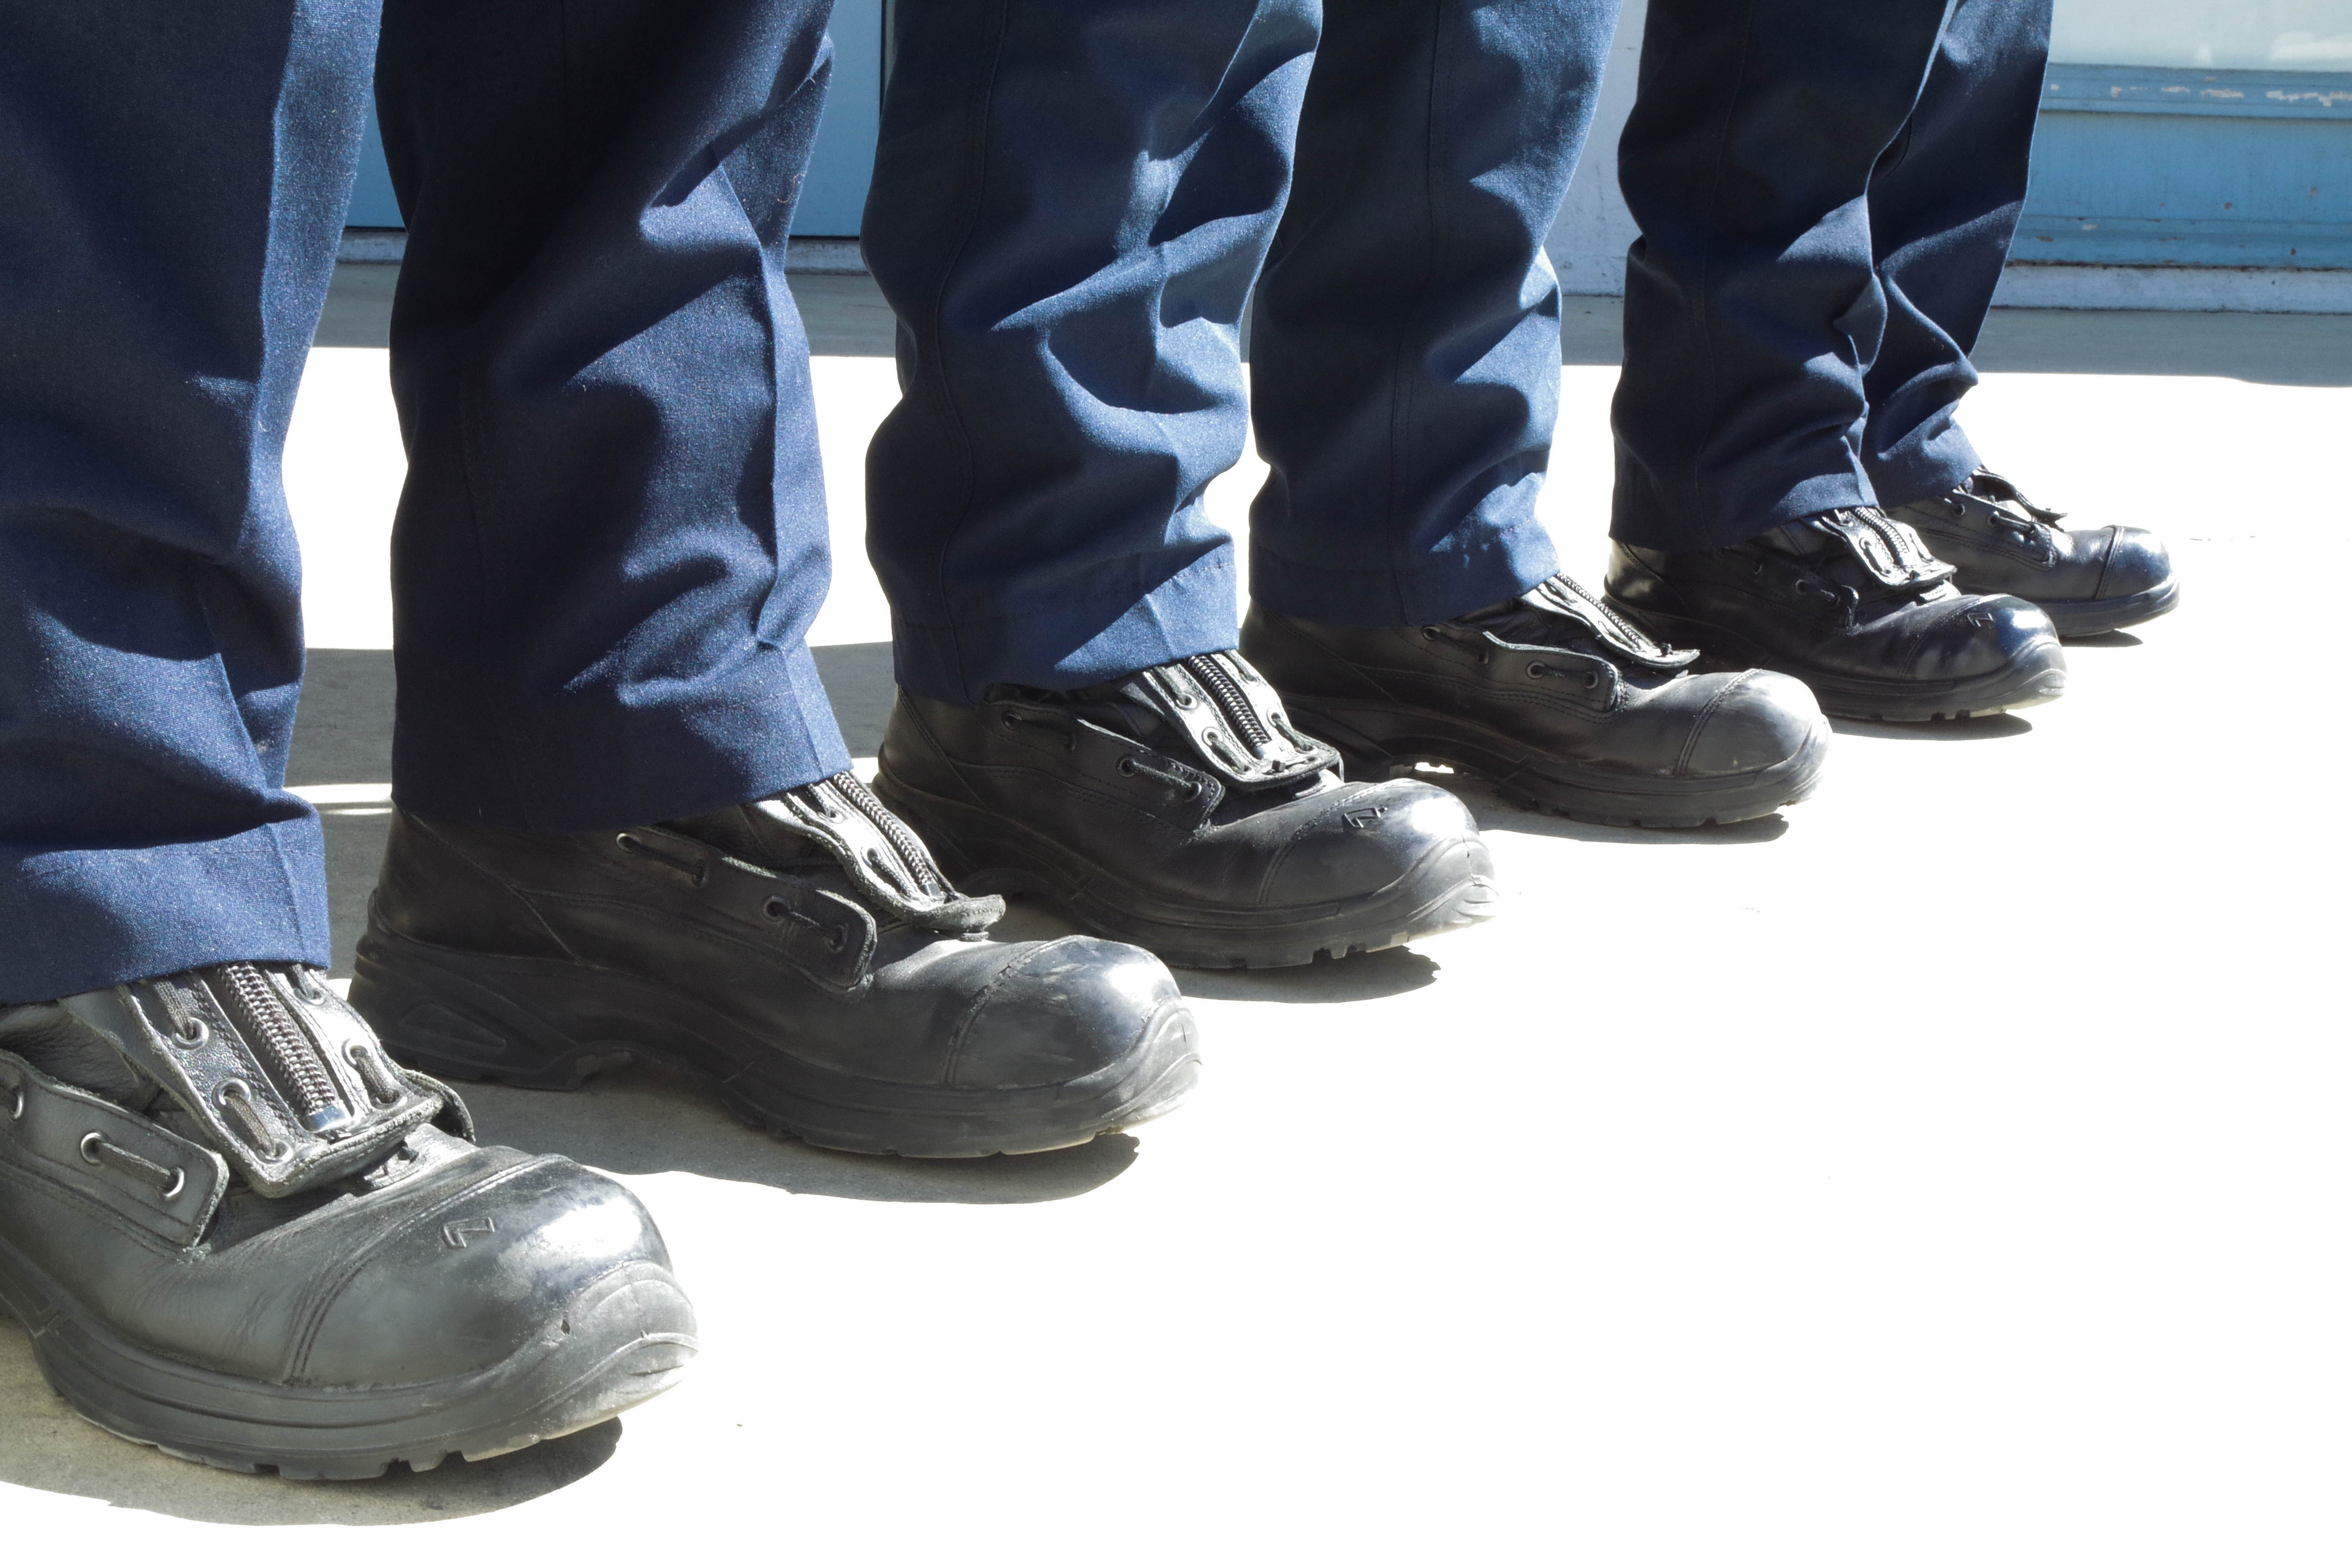 shoe-leather-boot-leg-spring-fire-station-1286748-pxhere.com